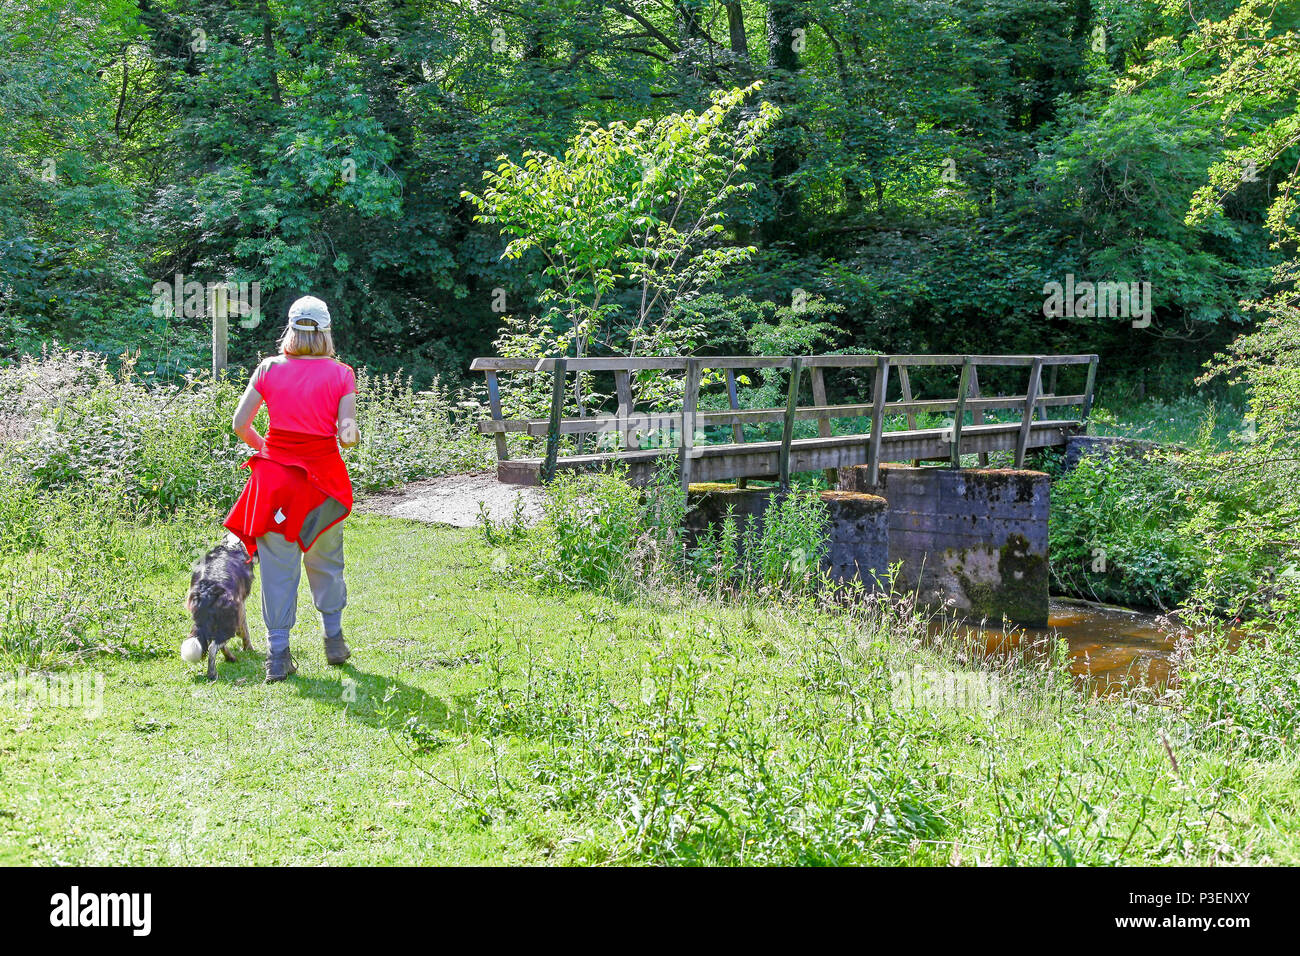 A woman and her dog walking, about to cross a wooden bridge over the River Manifold, Manifold Valley Staffordshire England UK - Stock Image